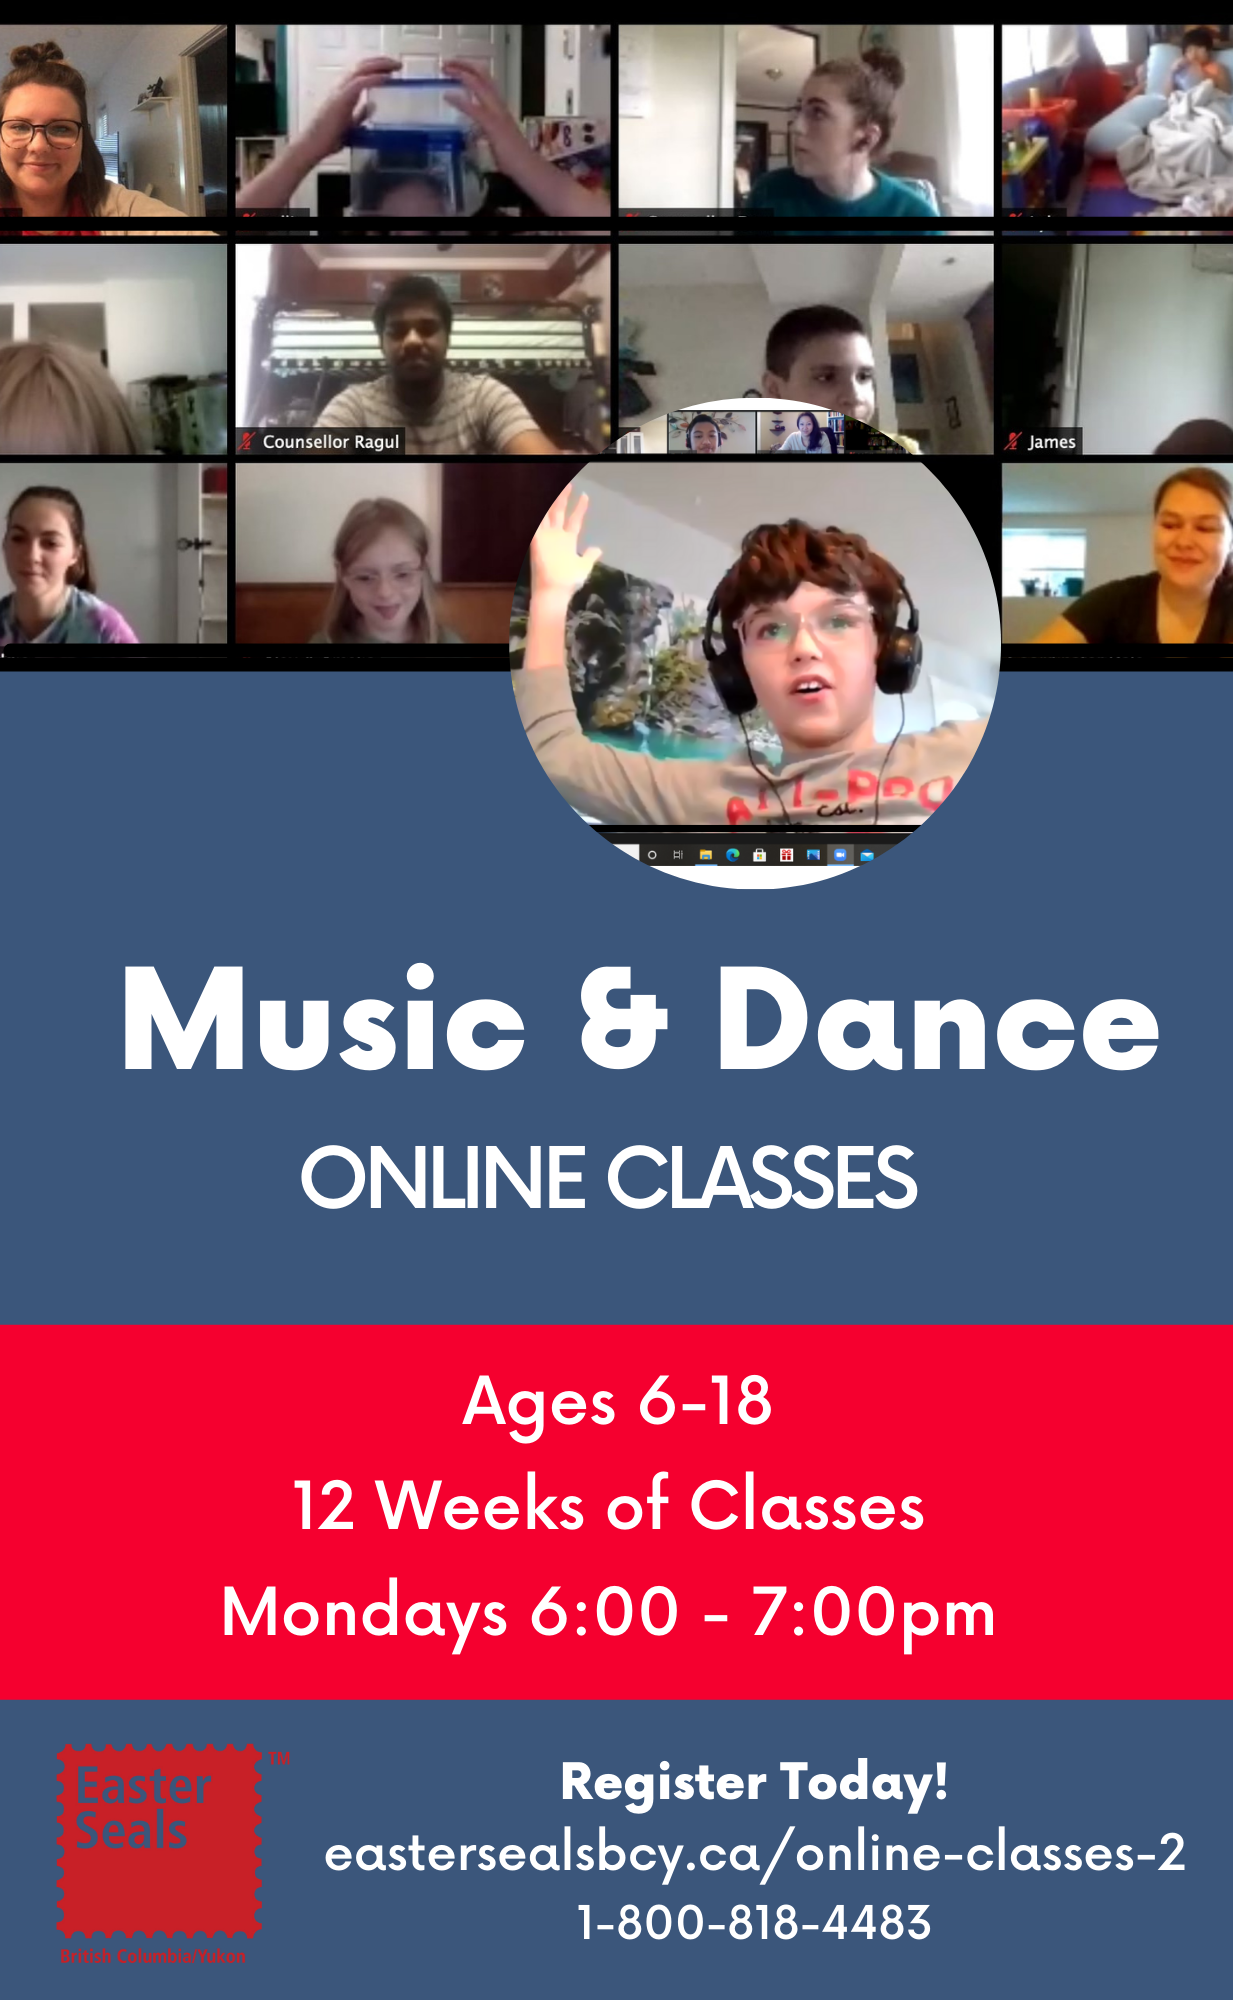 Music and Dance Classes for Ages 6-18